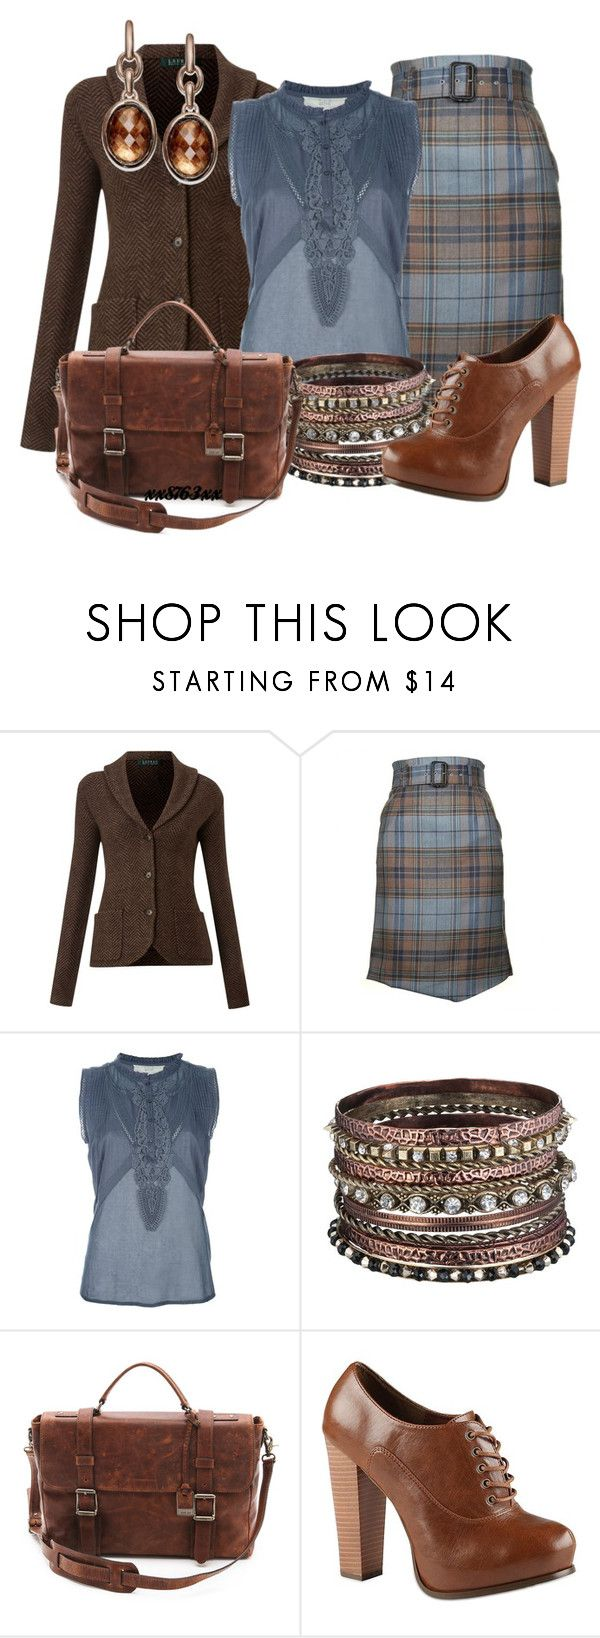 """""""Business Tweed"""" by xx8763xx ❤ liked on Polyvore featuring Lauren Ralph Lauren, Vivienne Westwood Red Label, Vanessa Bruno Athé, Frye, Call it SPRING and Bronzarte"""